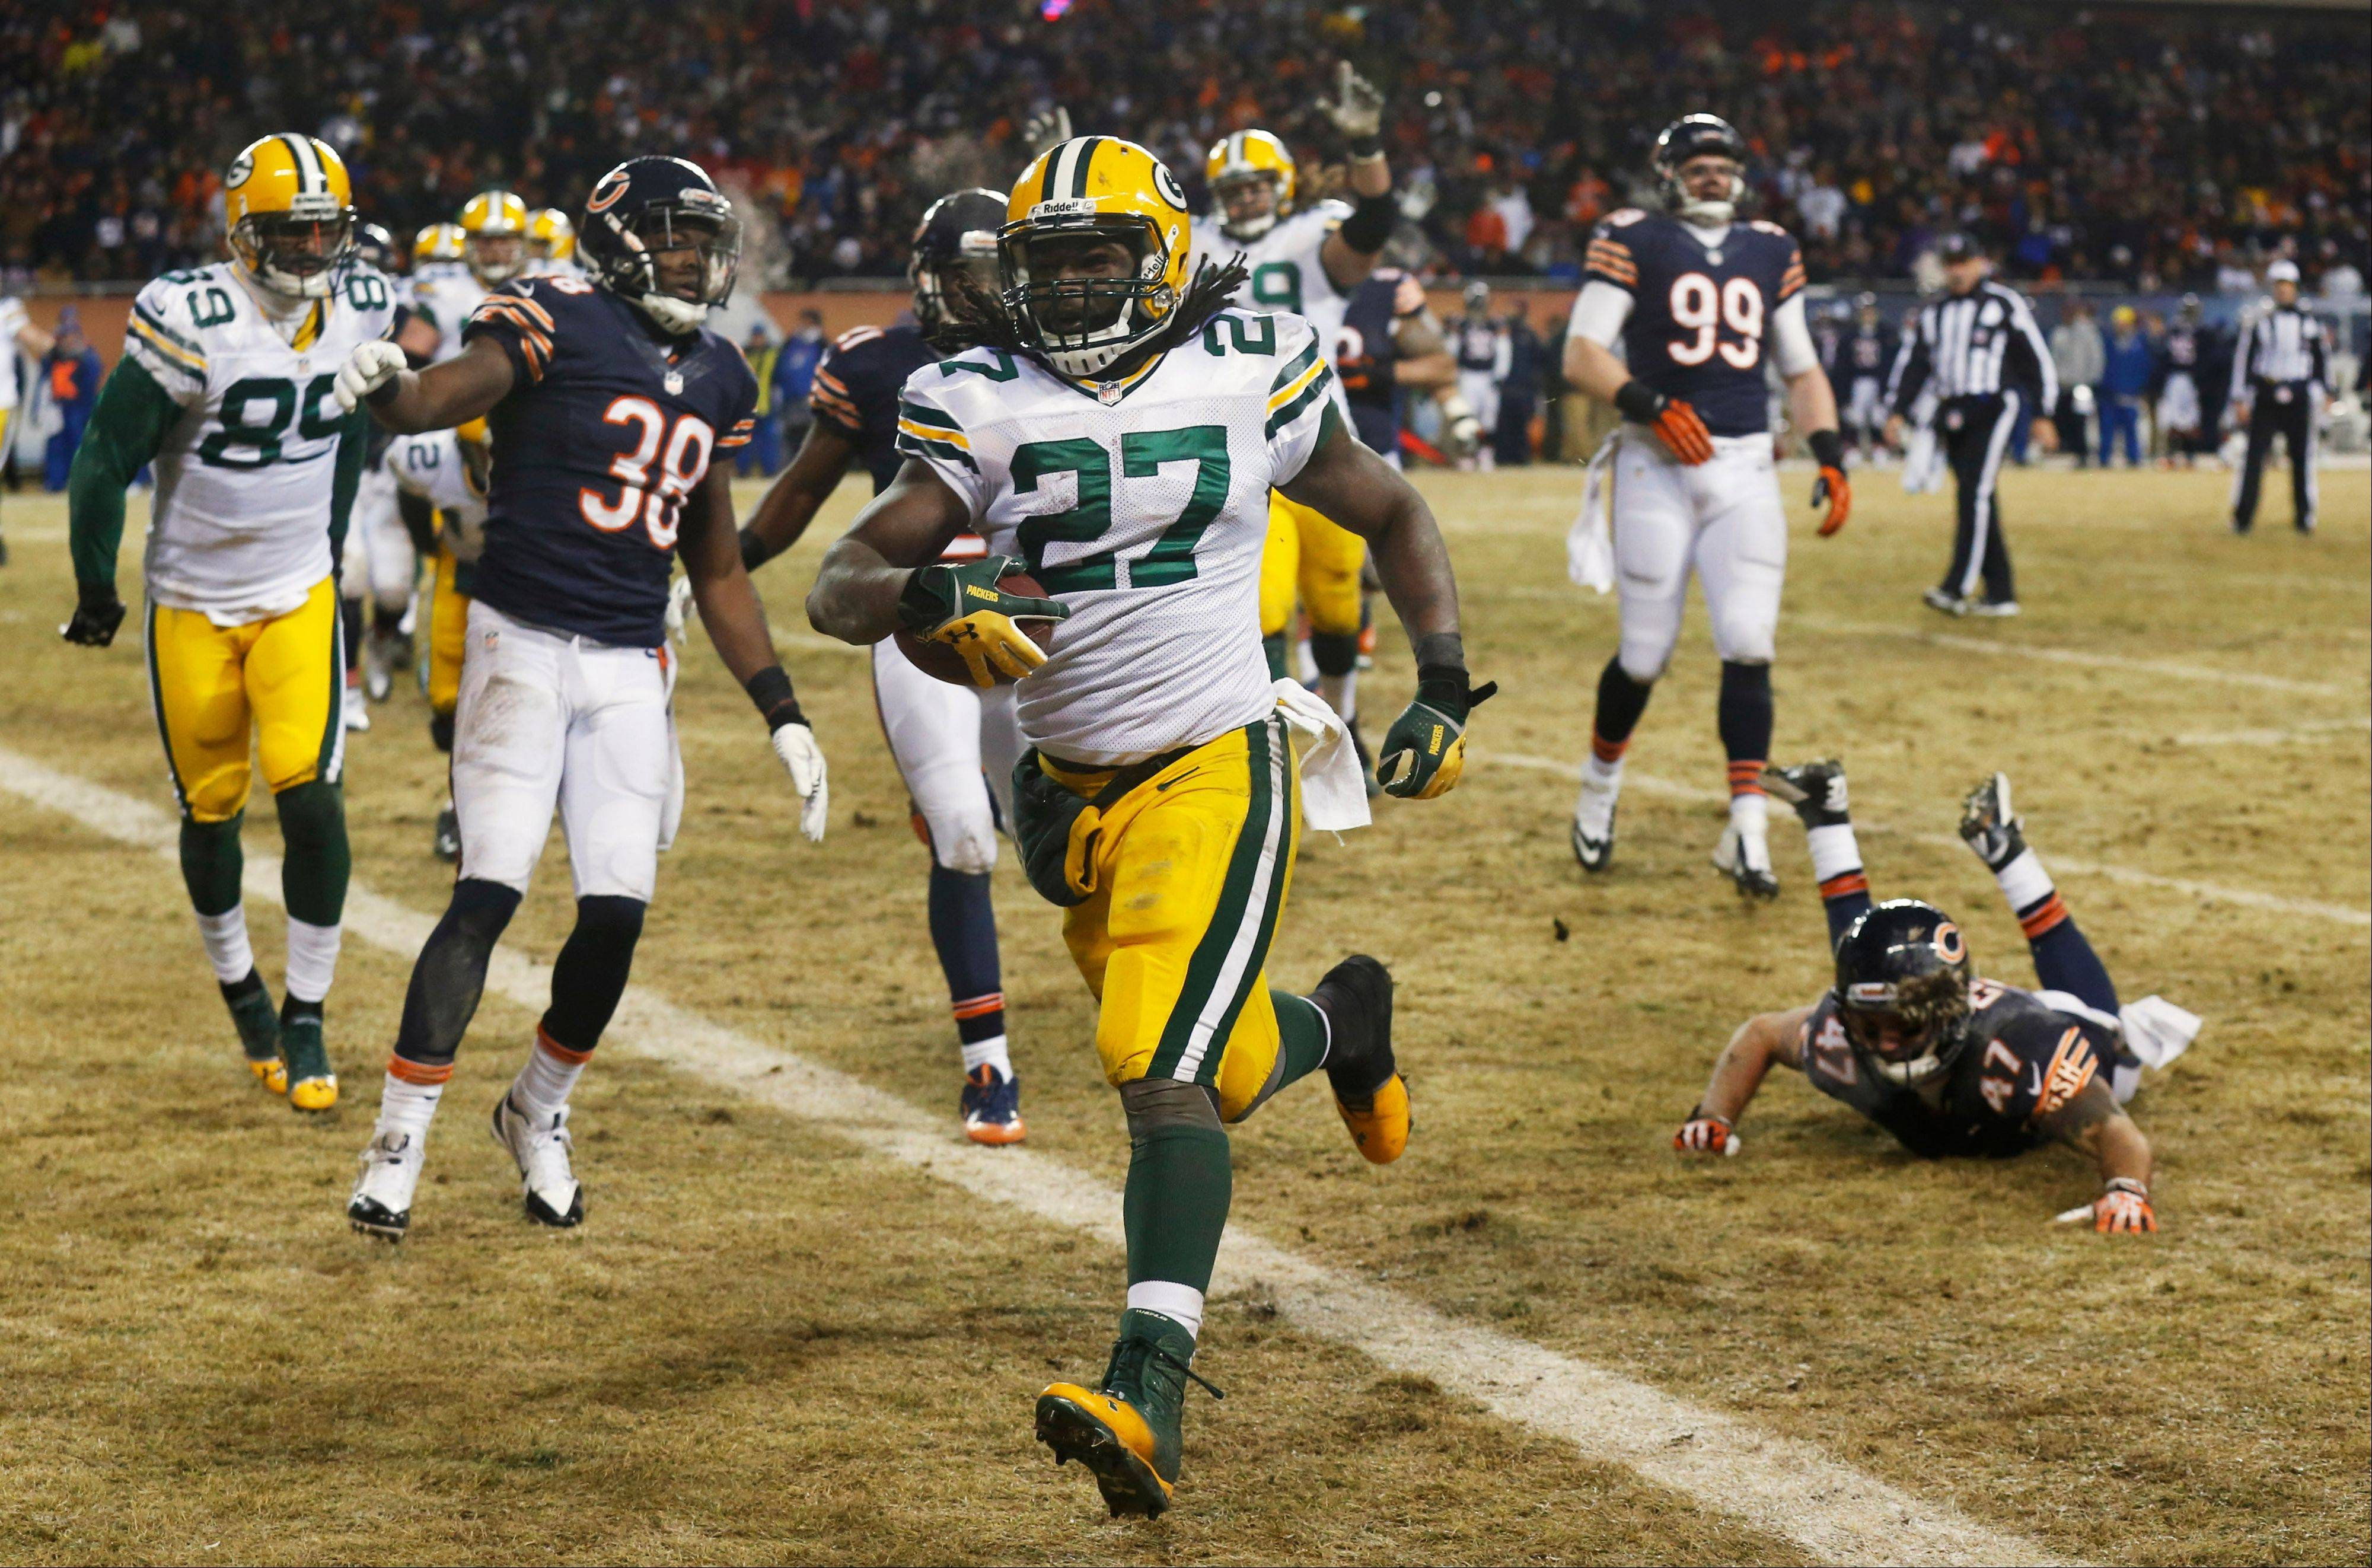 Green Bay Packers running back Eddie Lacy runs into the end zone for a touchdown during Sunday�s second half at Soldier Field.